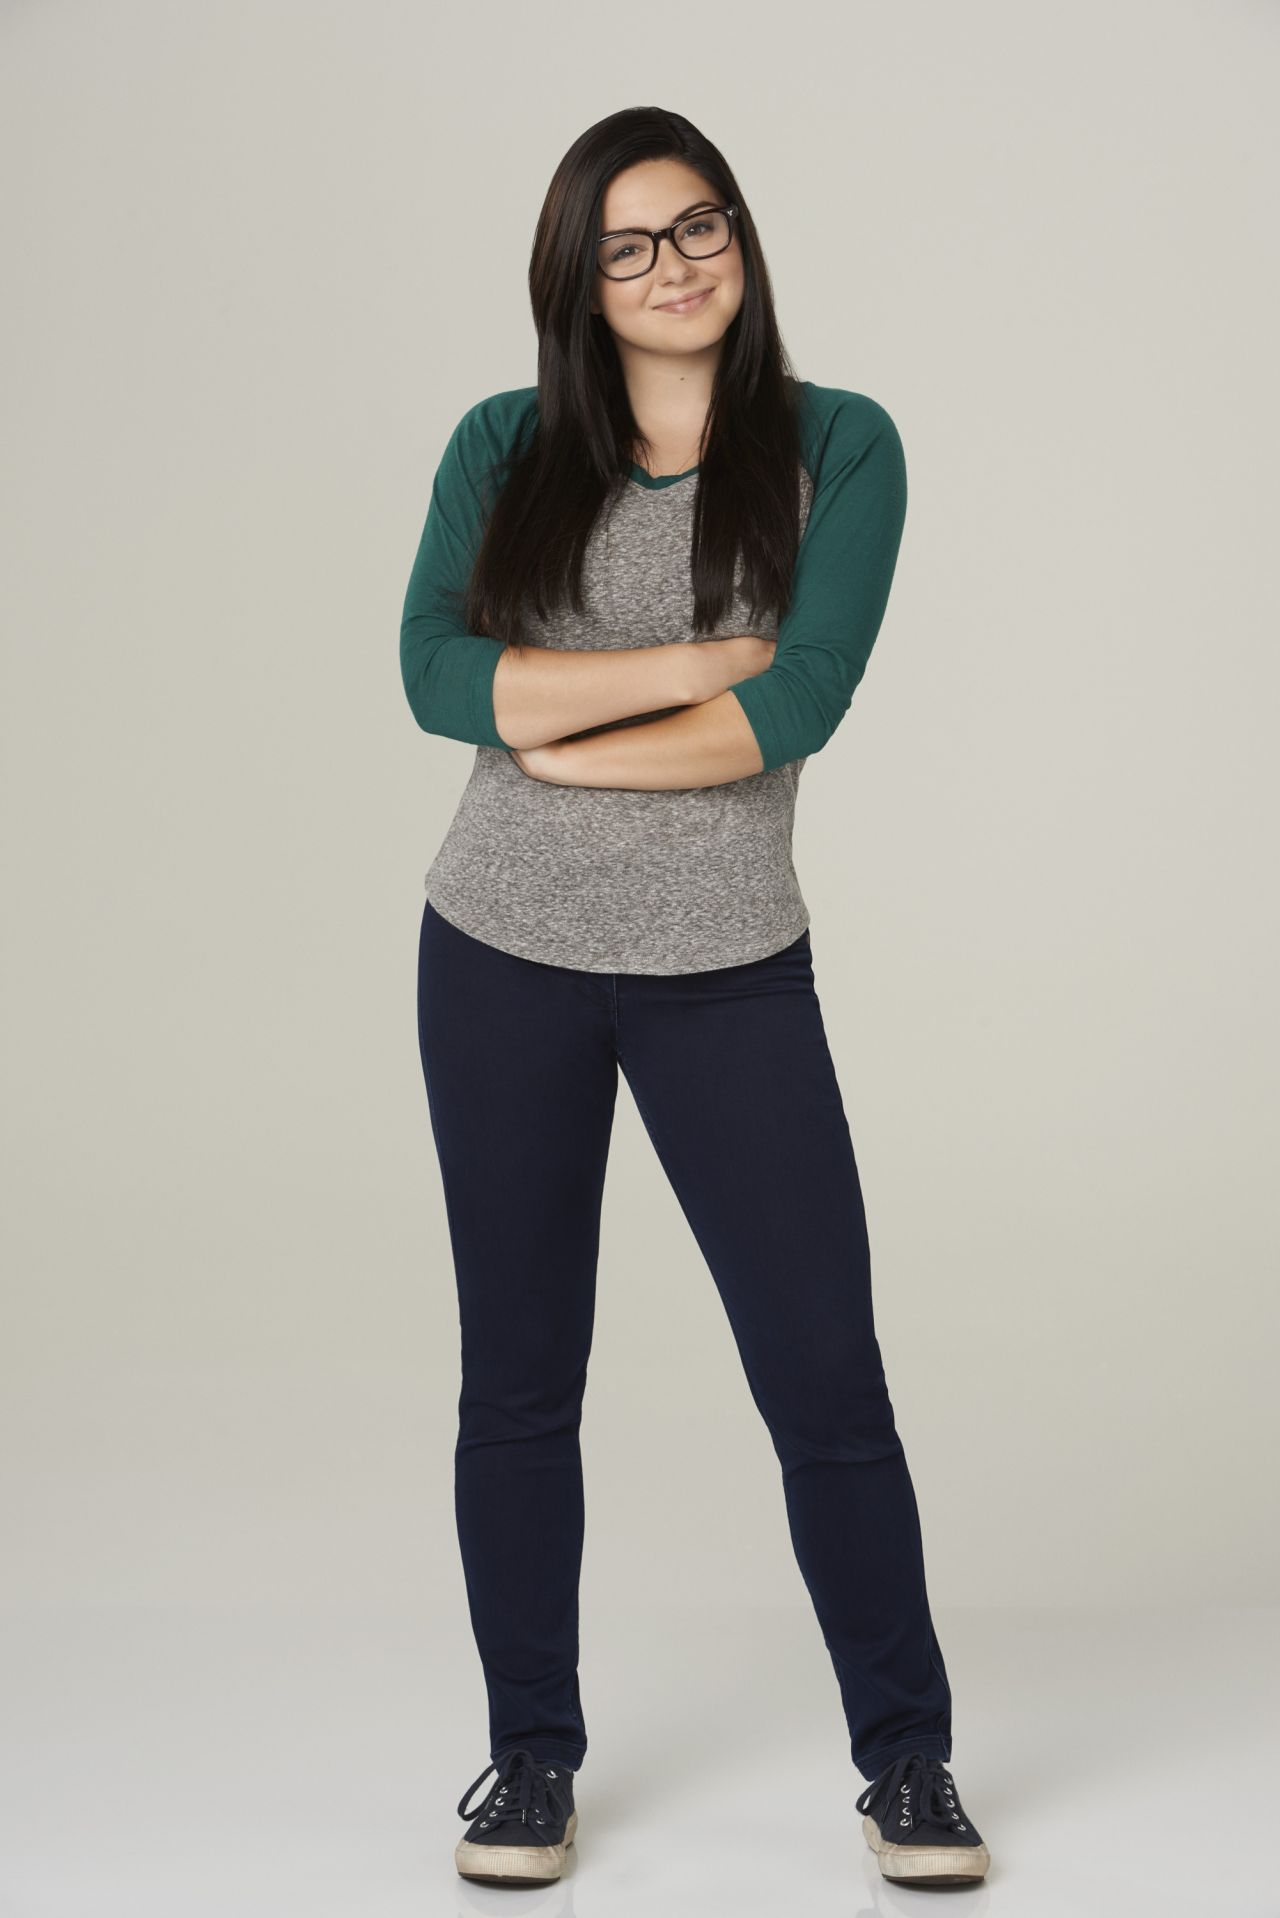 Ariel Winter - Modern Family Season 6 Promo Shots